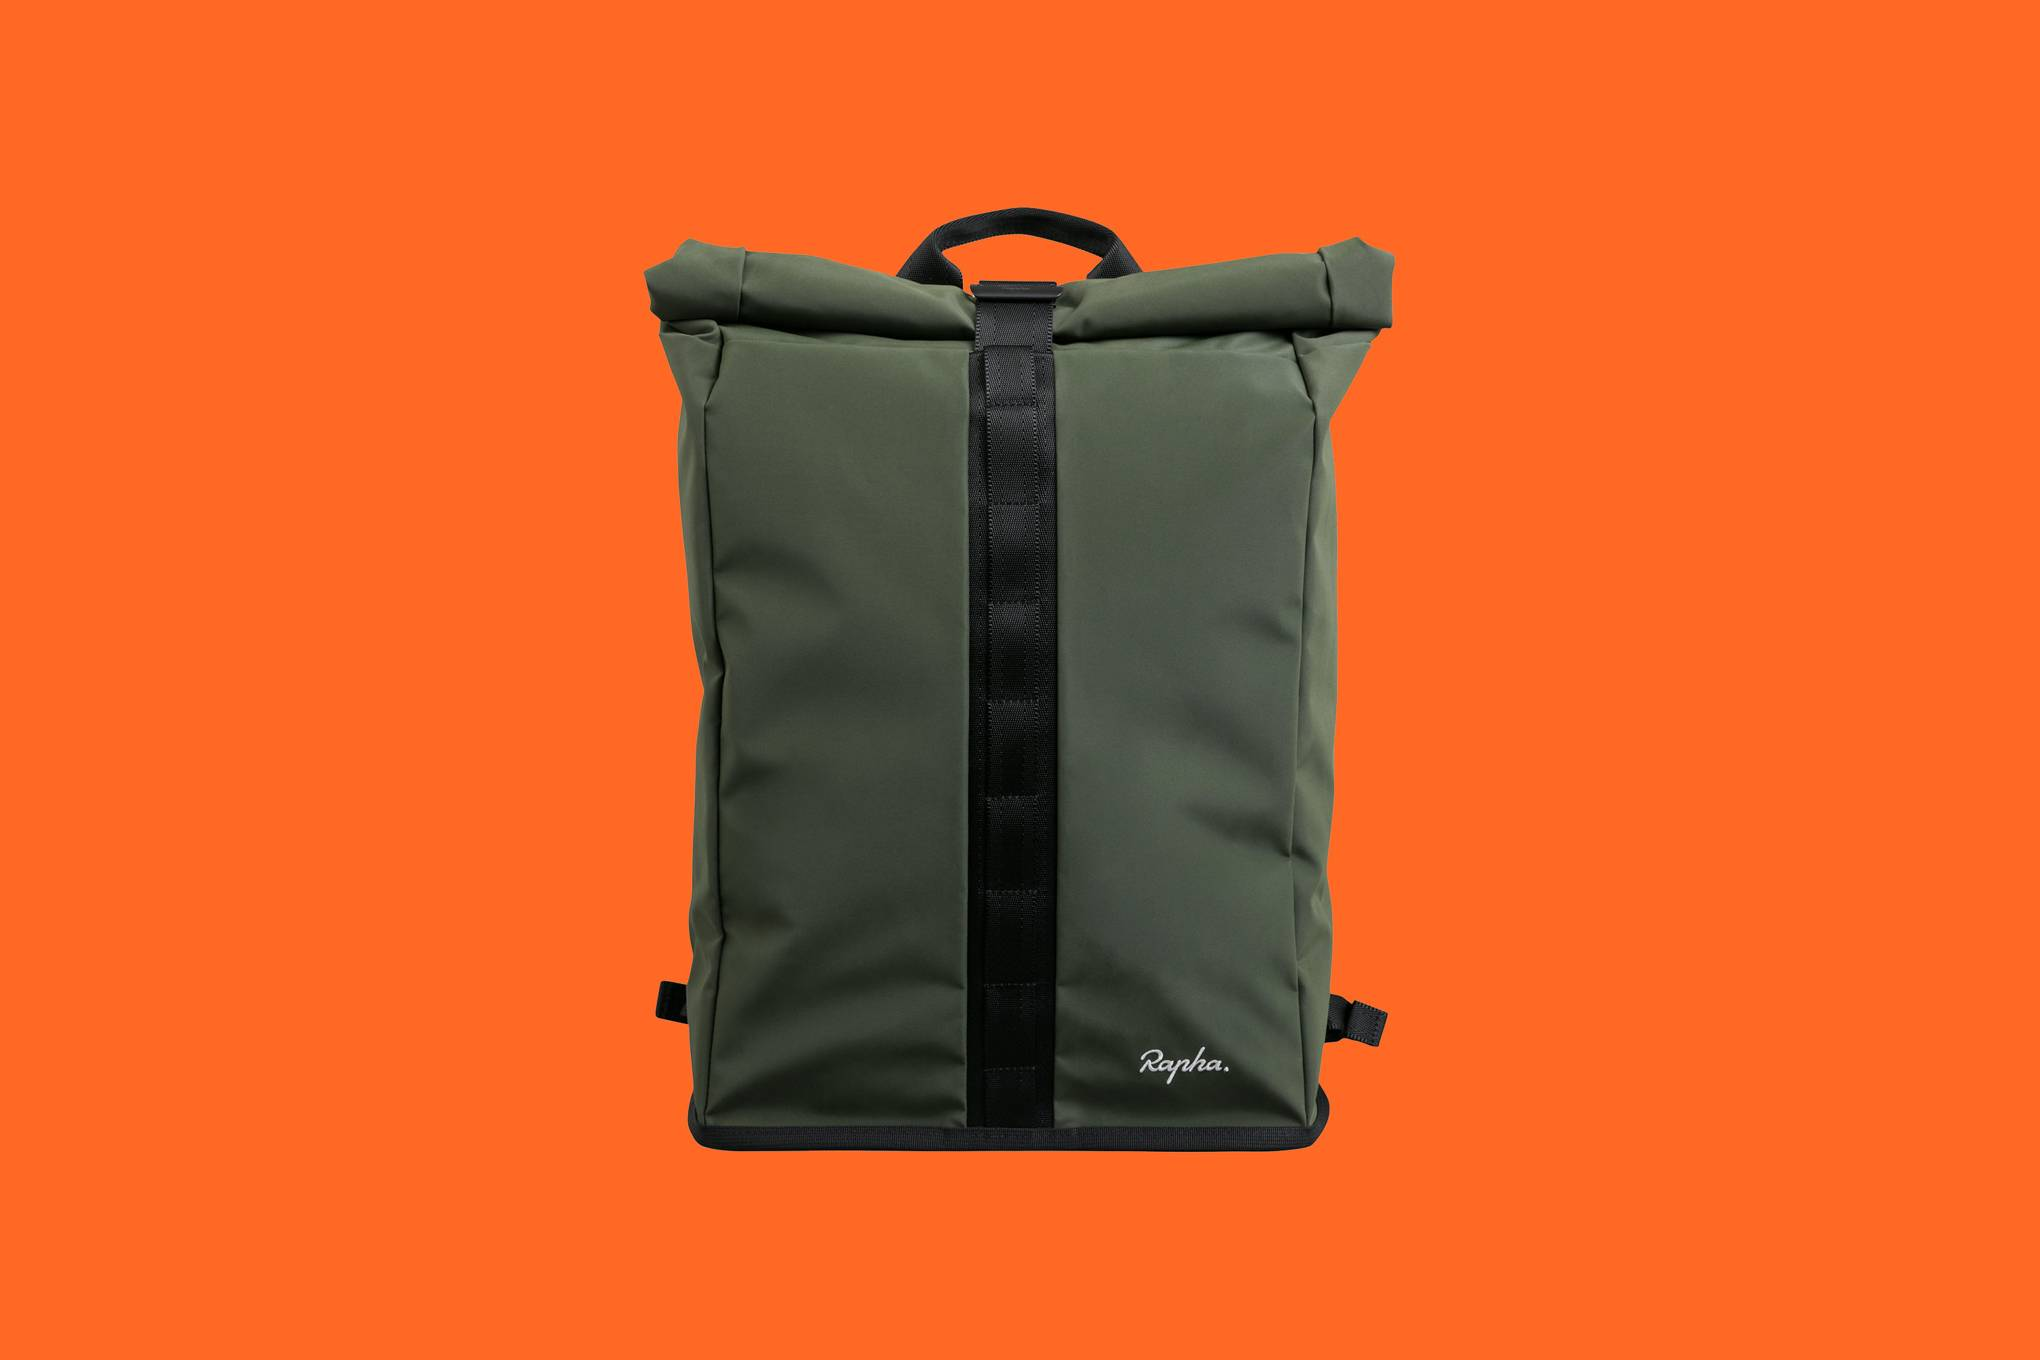 8496d680903d8 Best Backpack 2019: The bestpacks for travel and work | WIRED UK